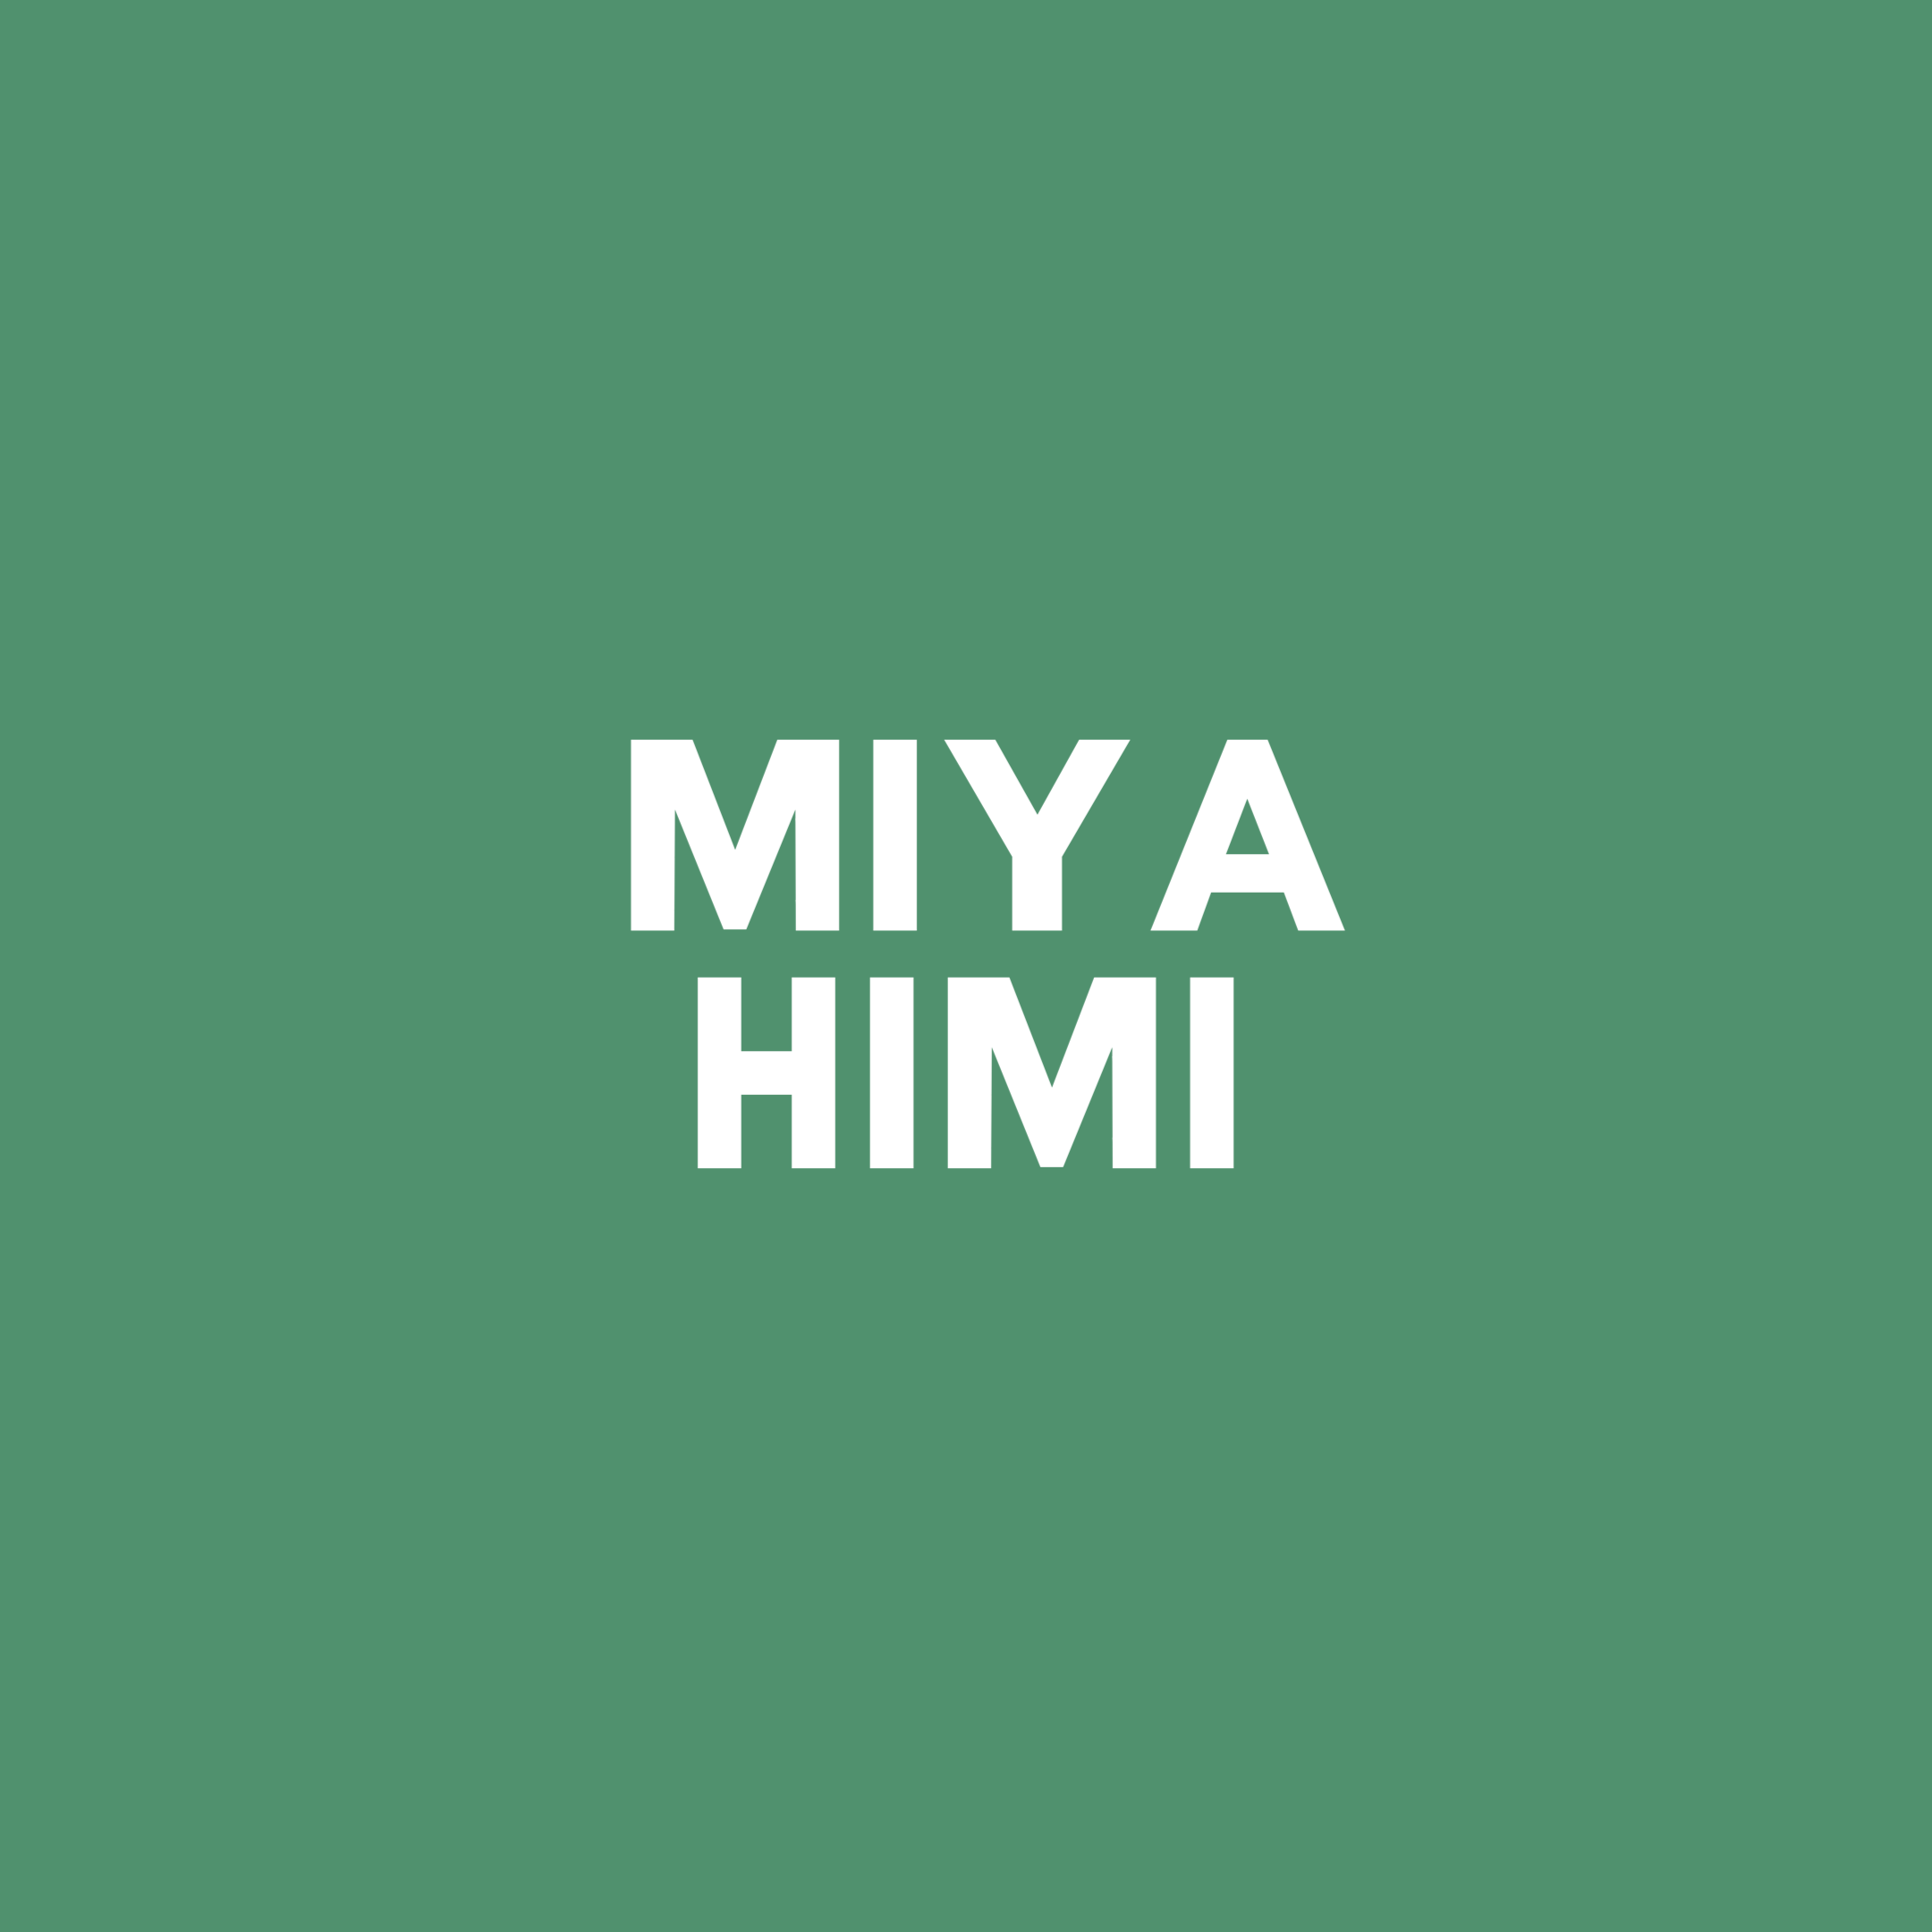 MIYA HIMI - The Craft Central